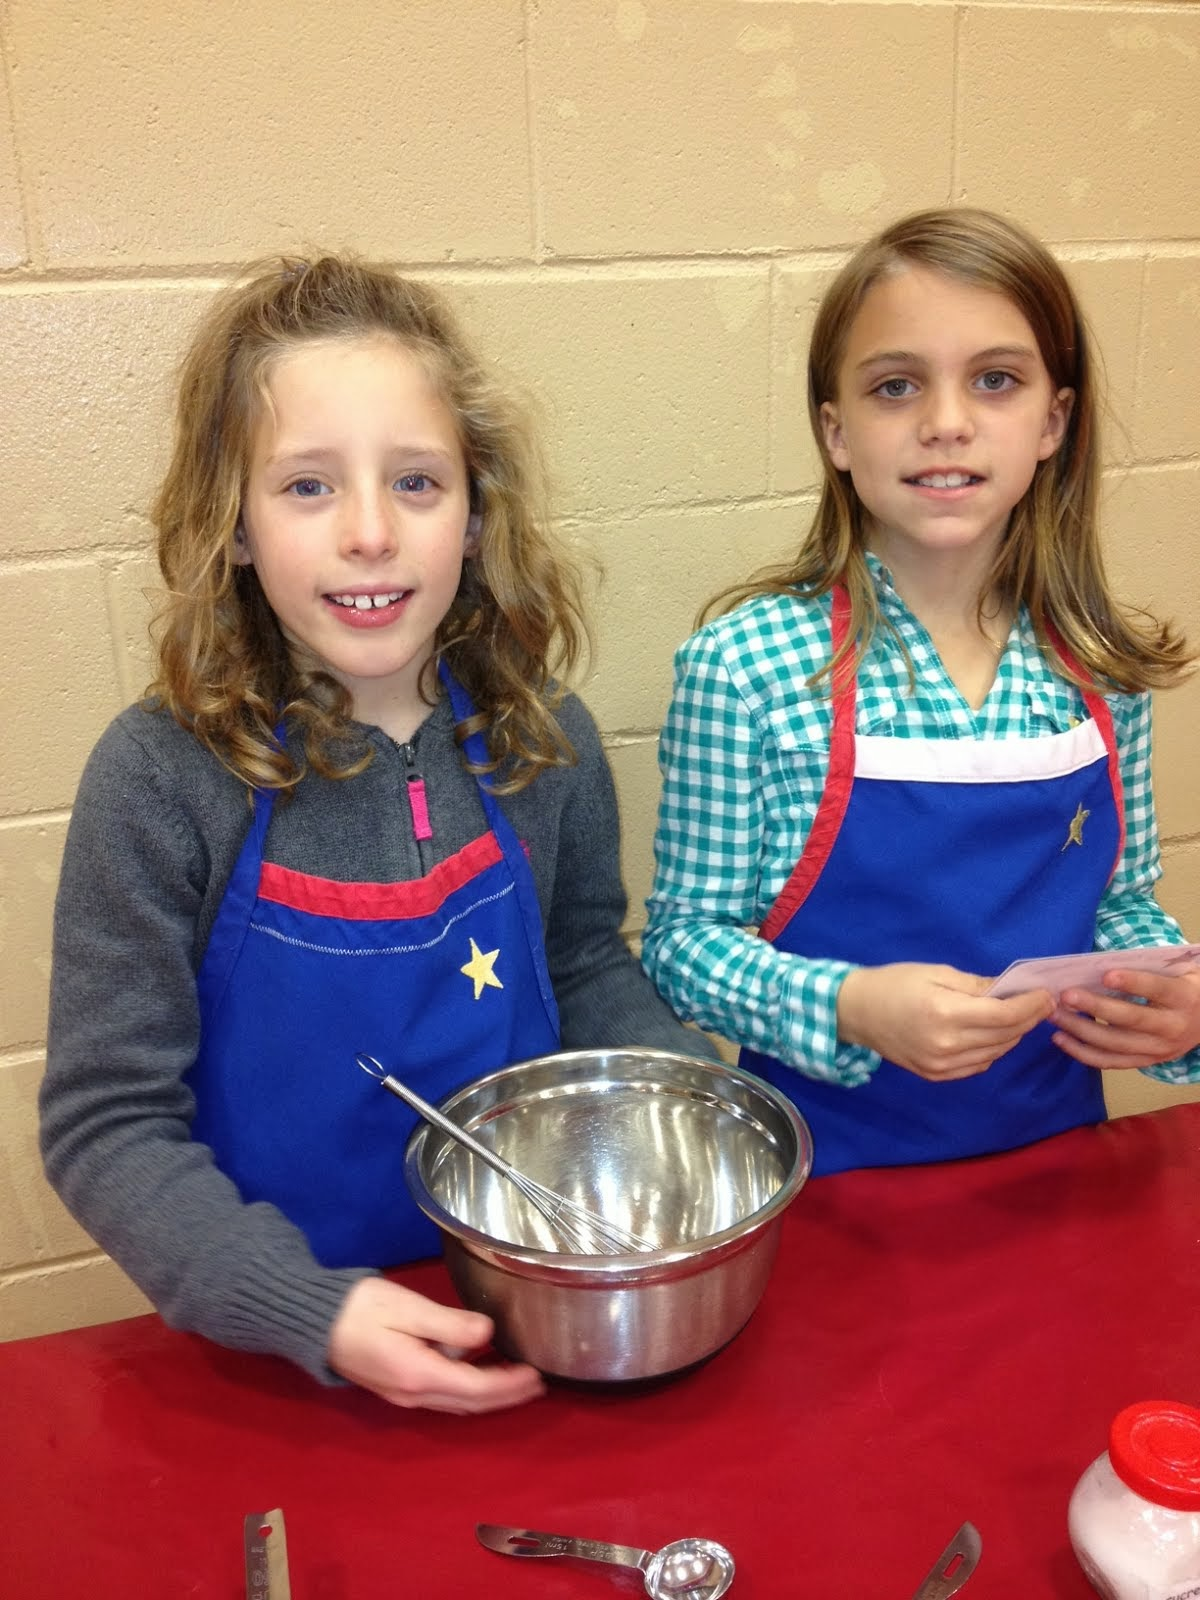 Chef a L'ecole comes to LAke